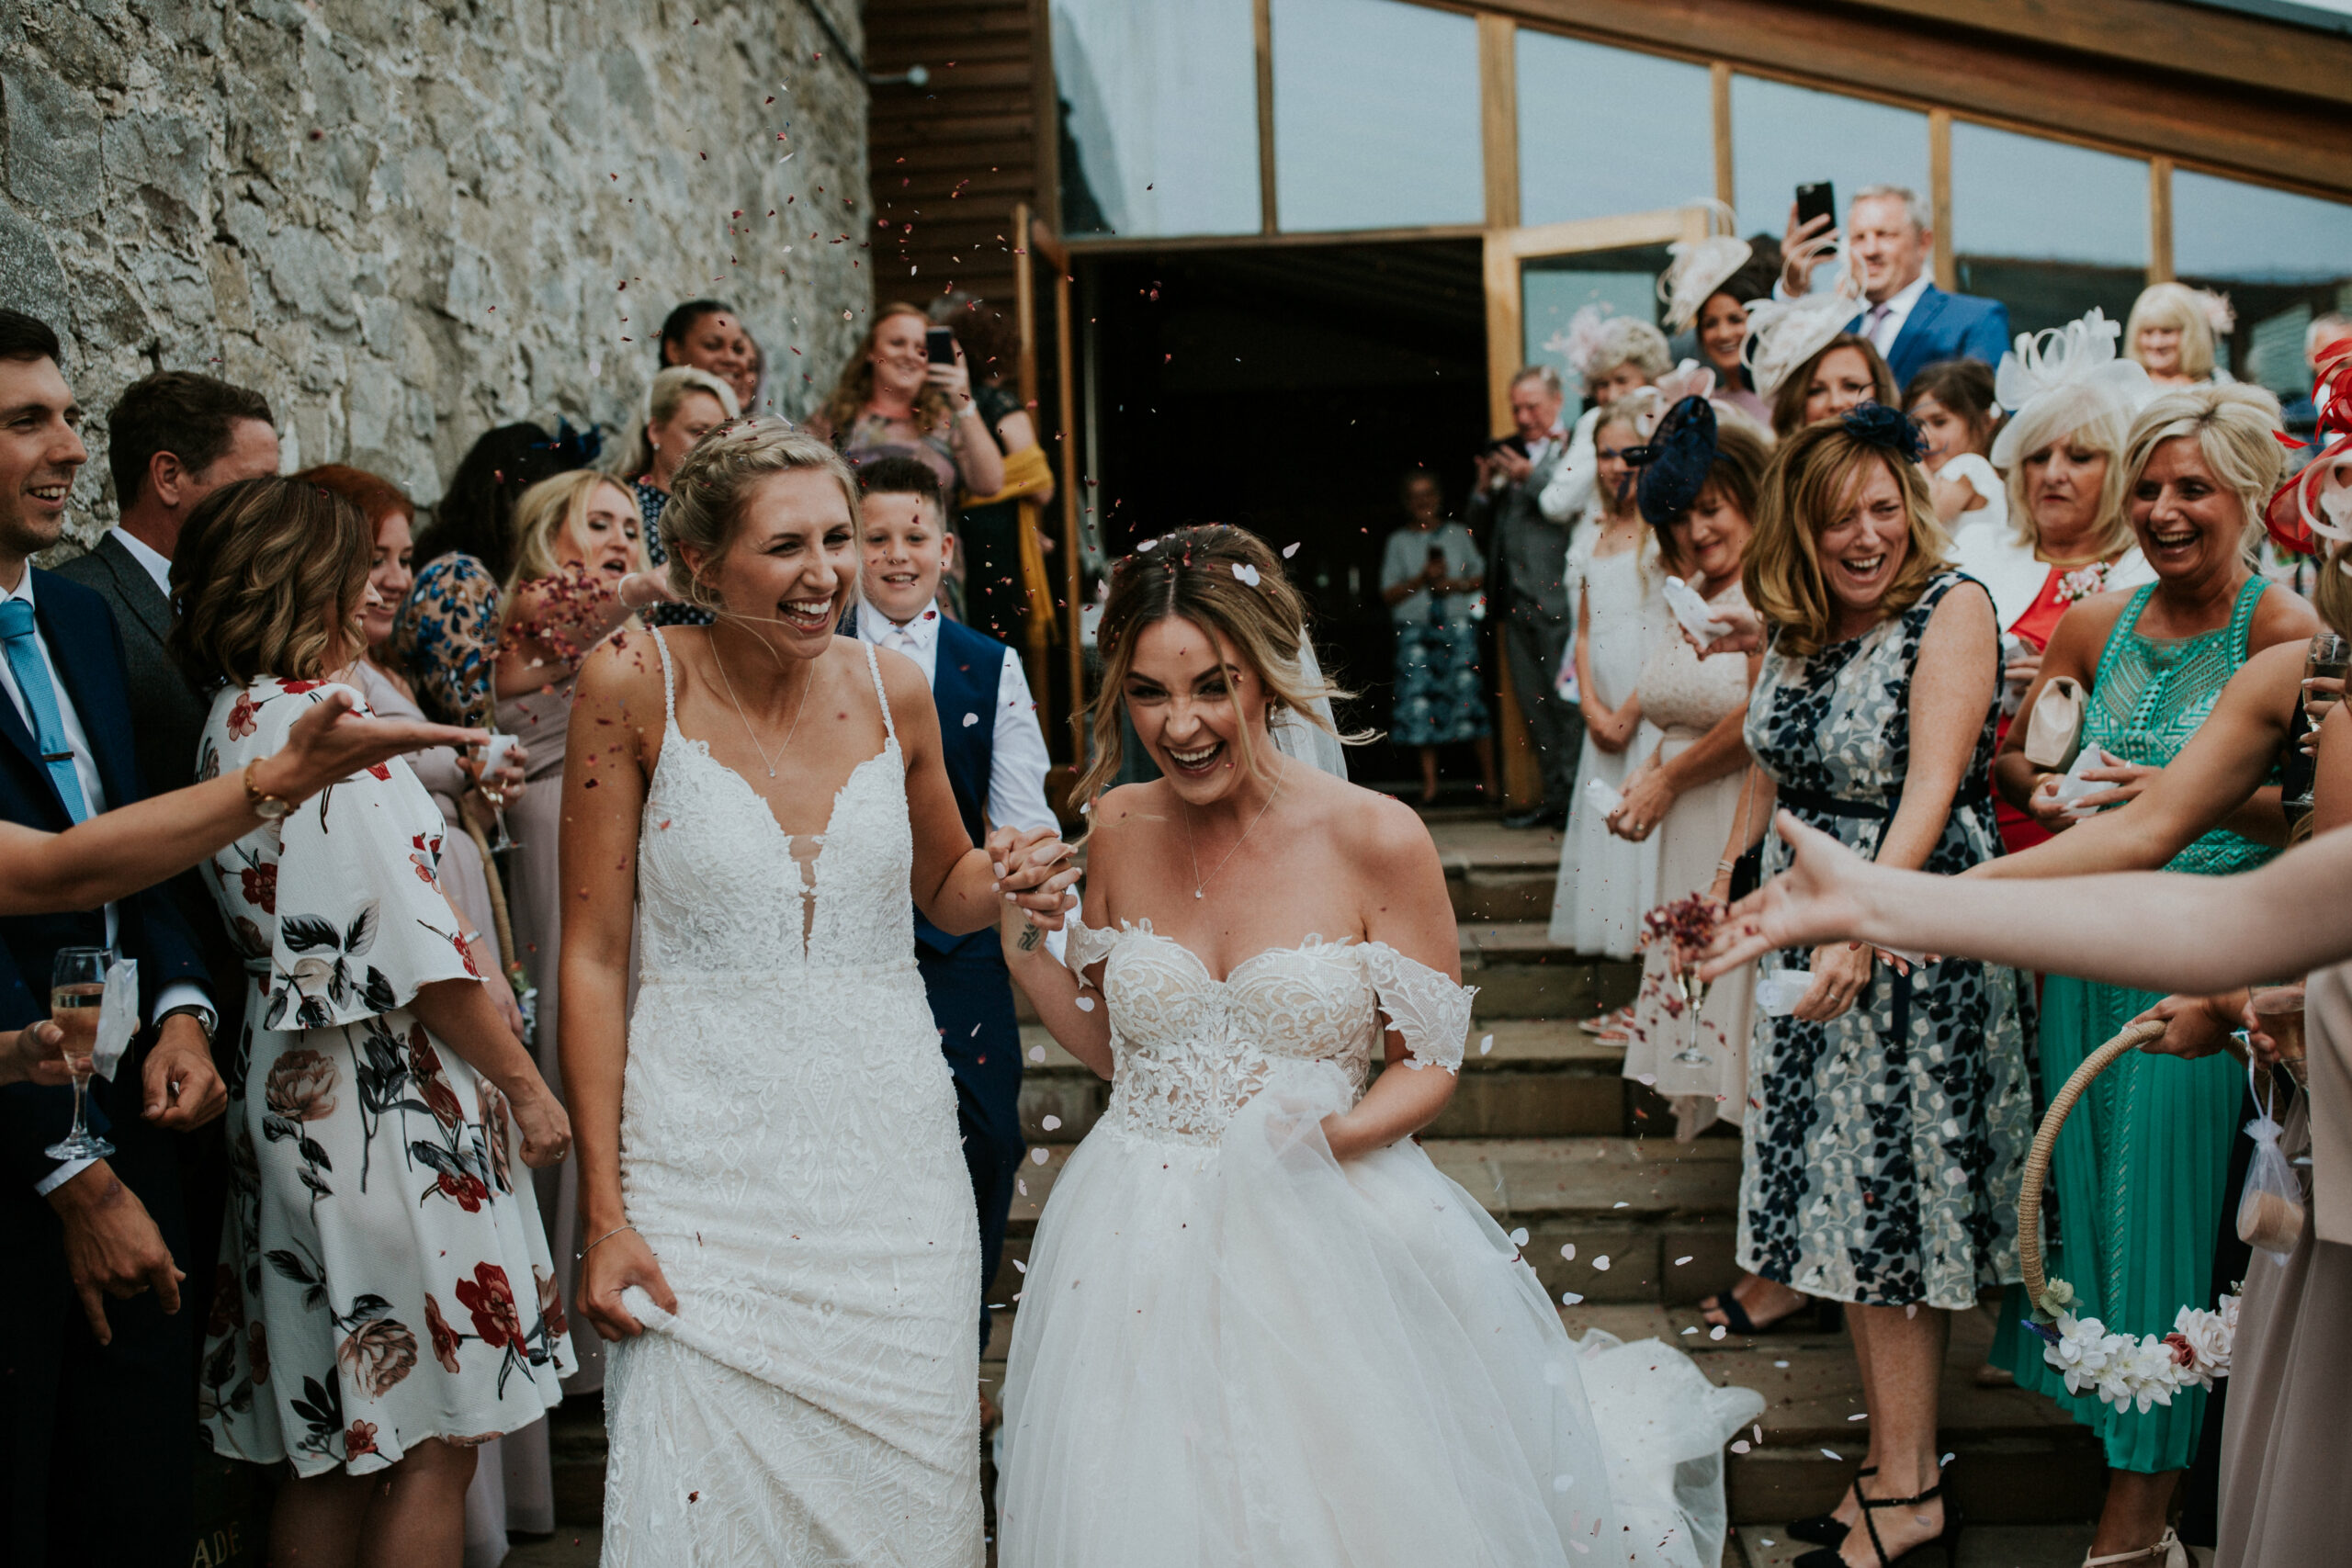 brides walking whilst guests are throwing confetti